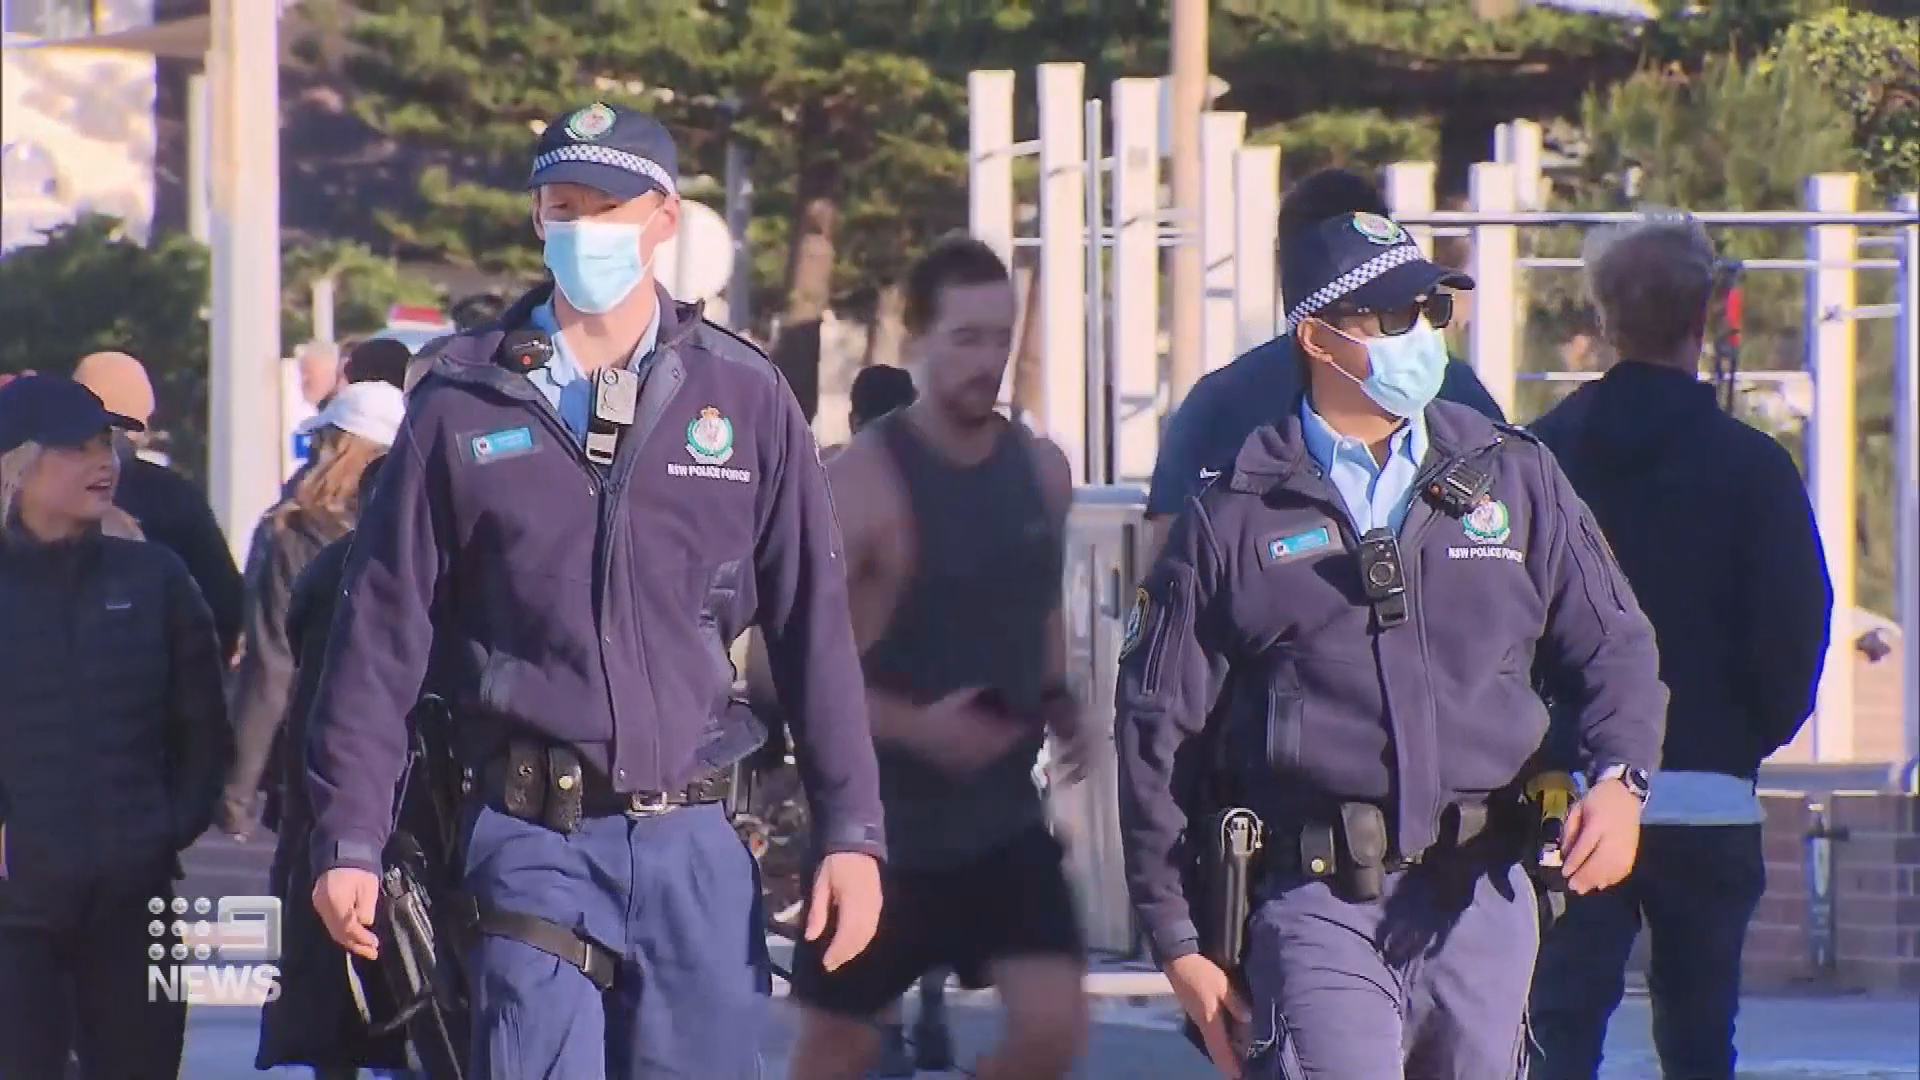 Hundreds of police to enforce COVID rules